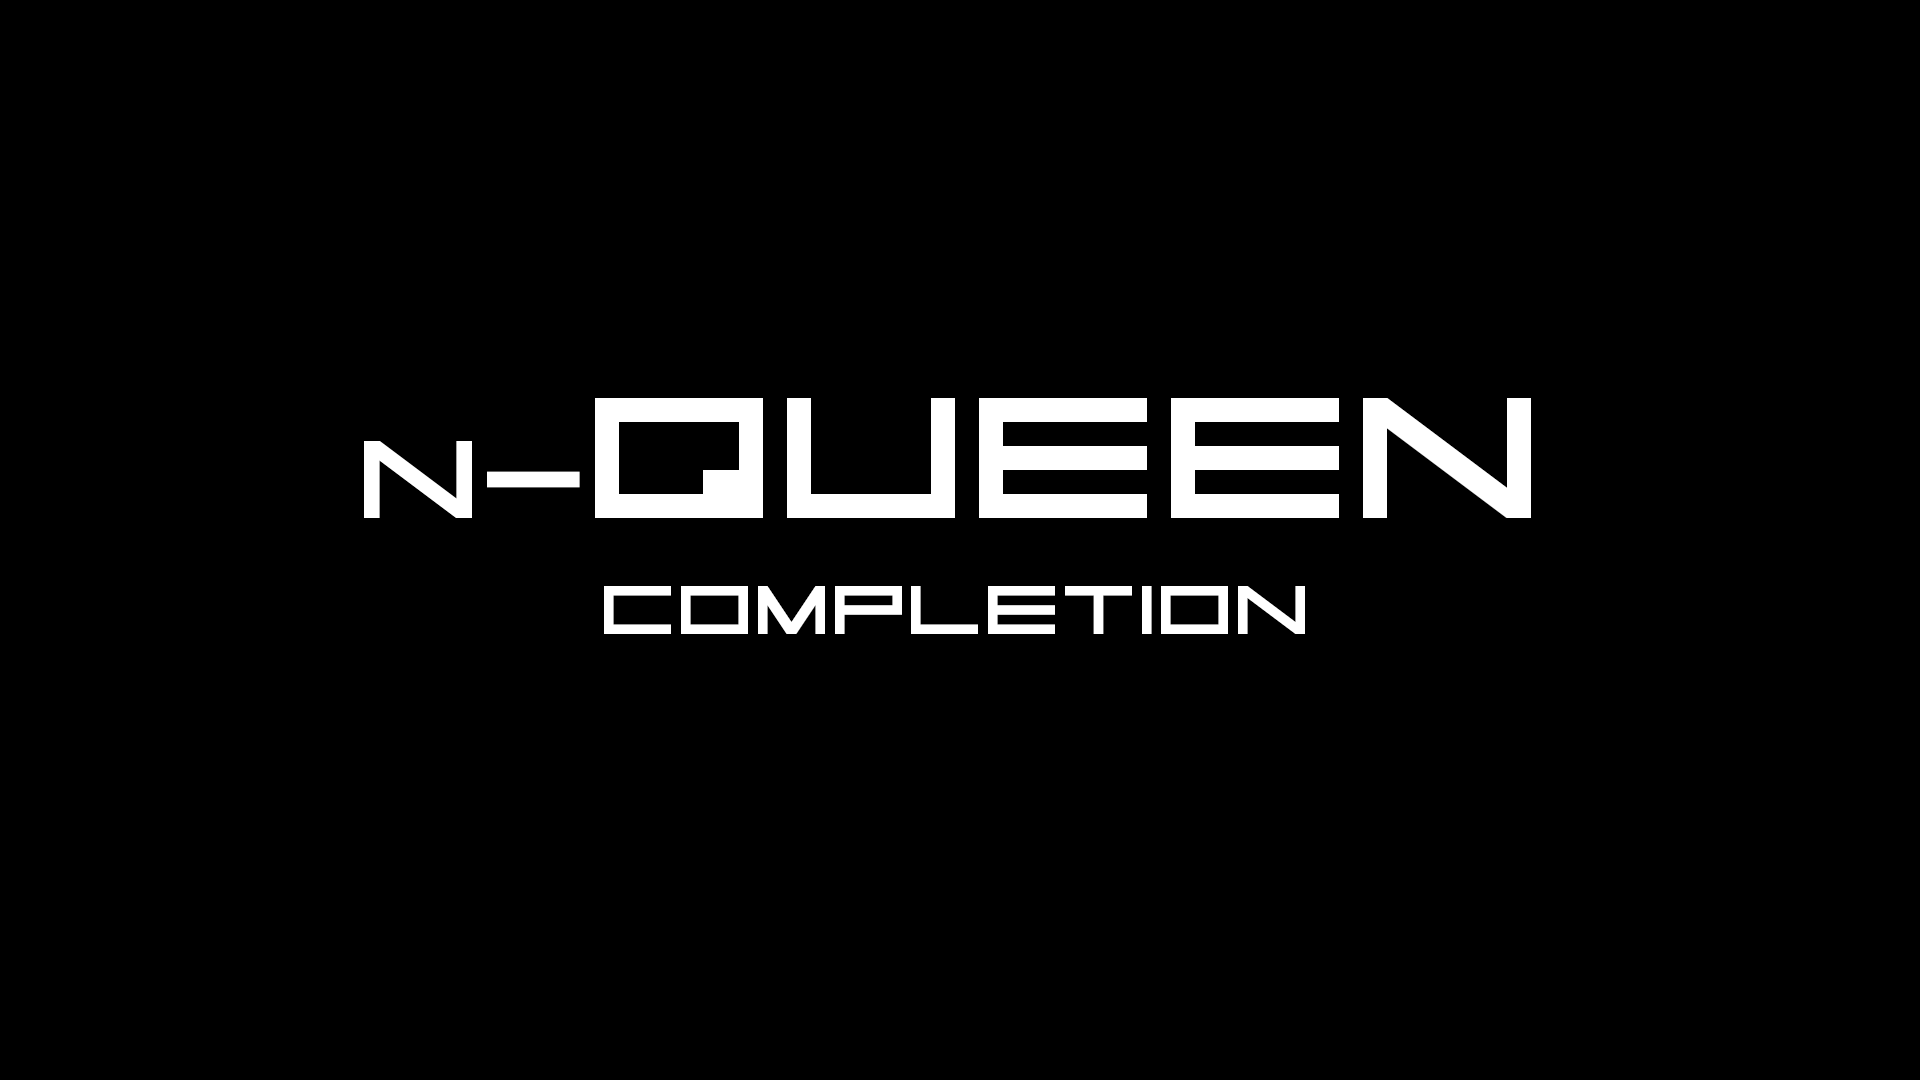 n-Queens Completion